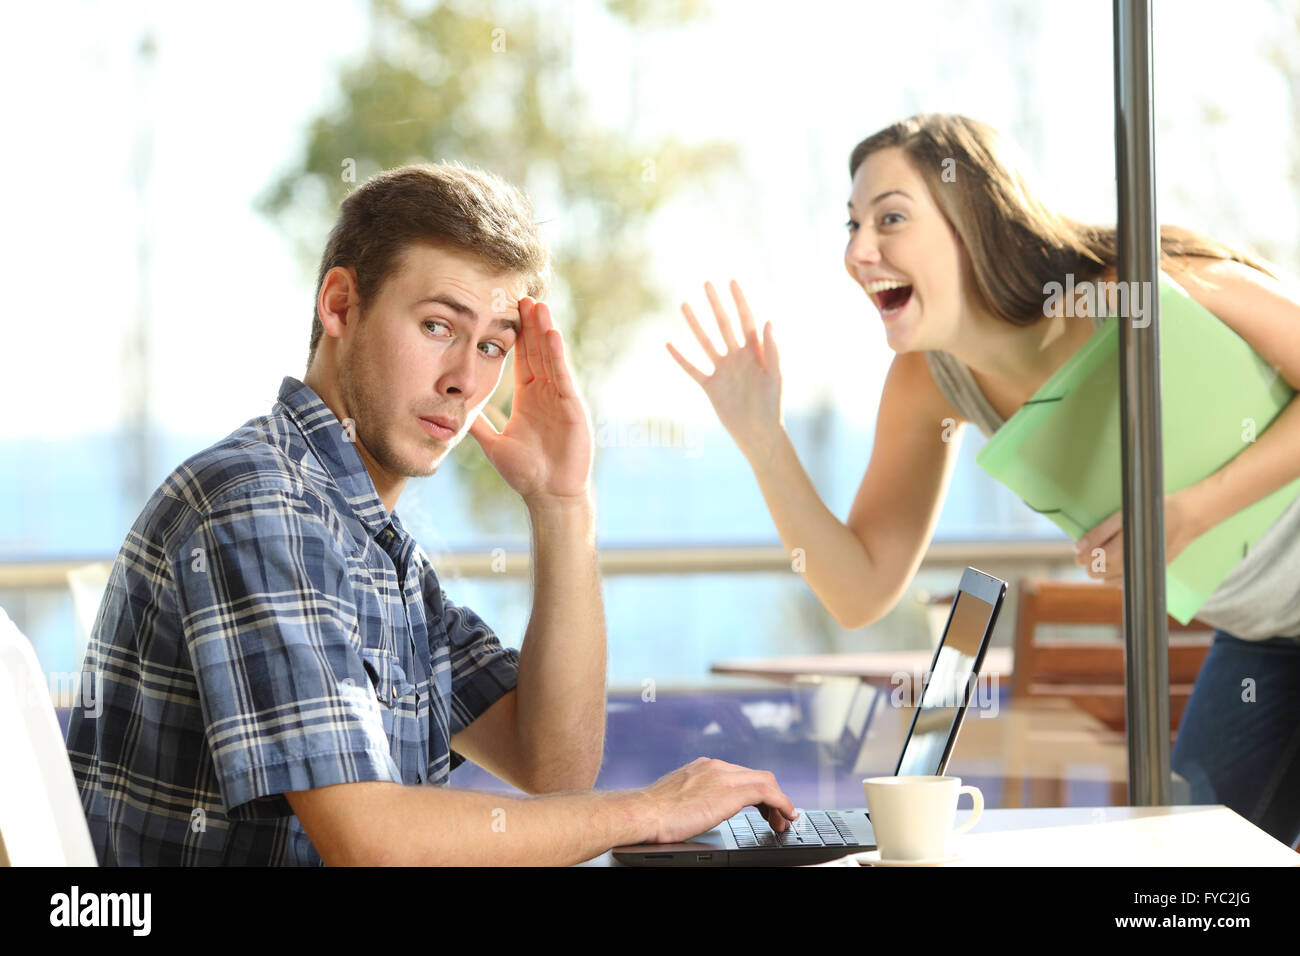 Man ignoring and rejecting to a stalker woman in a coffee shop - Stock Image